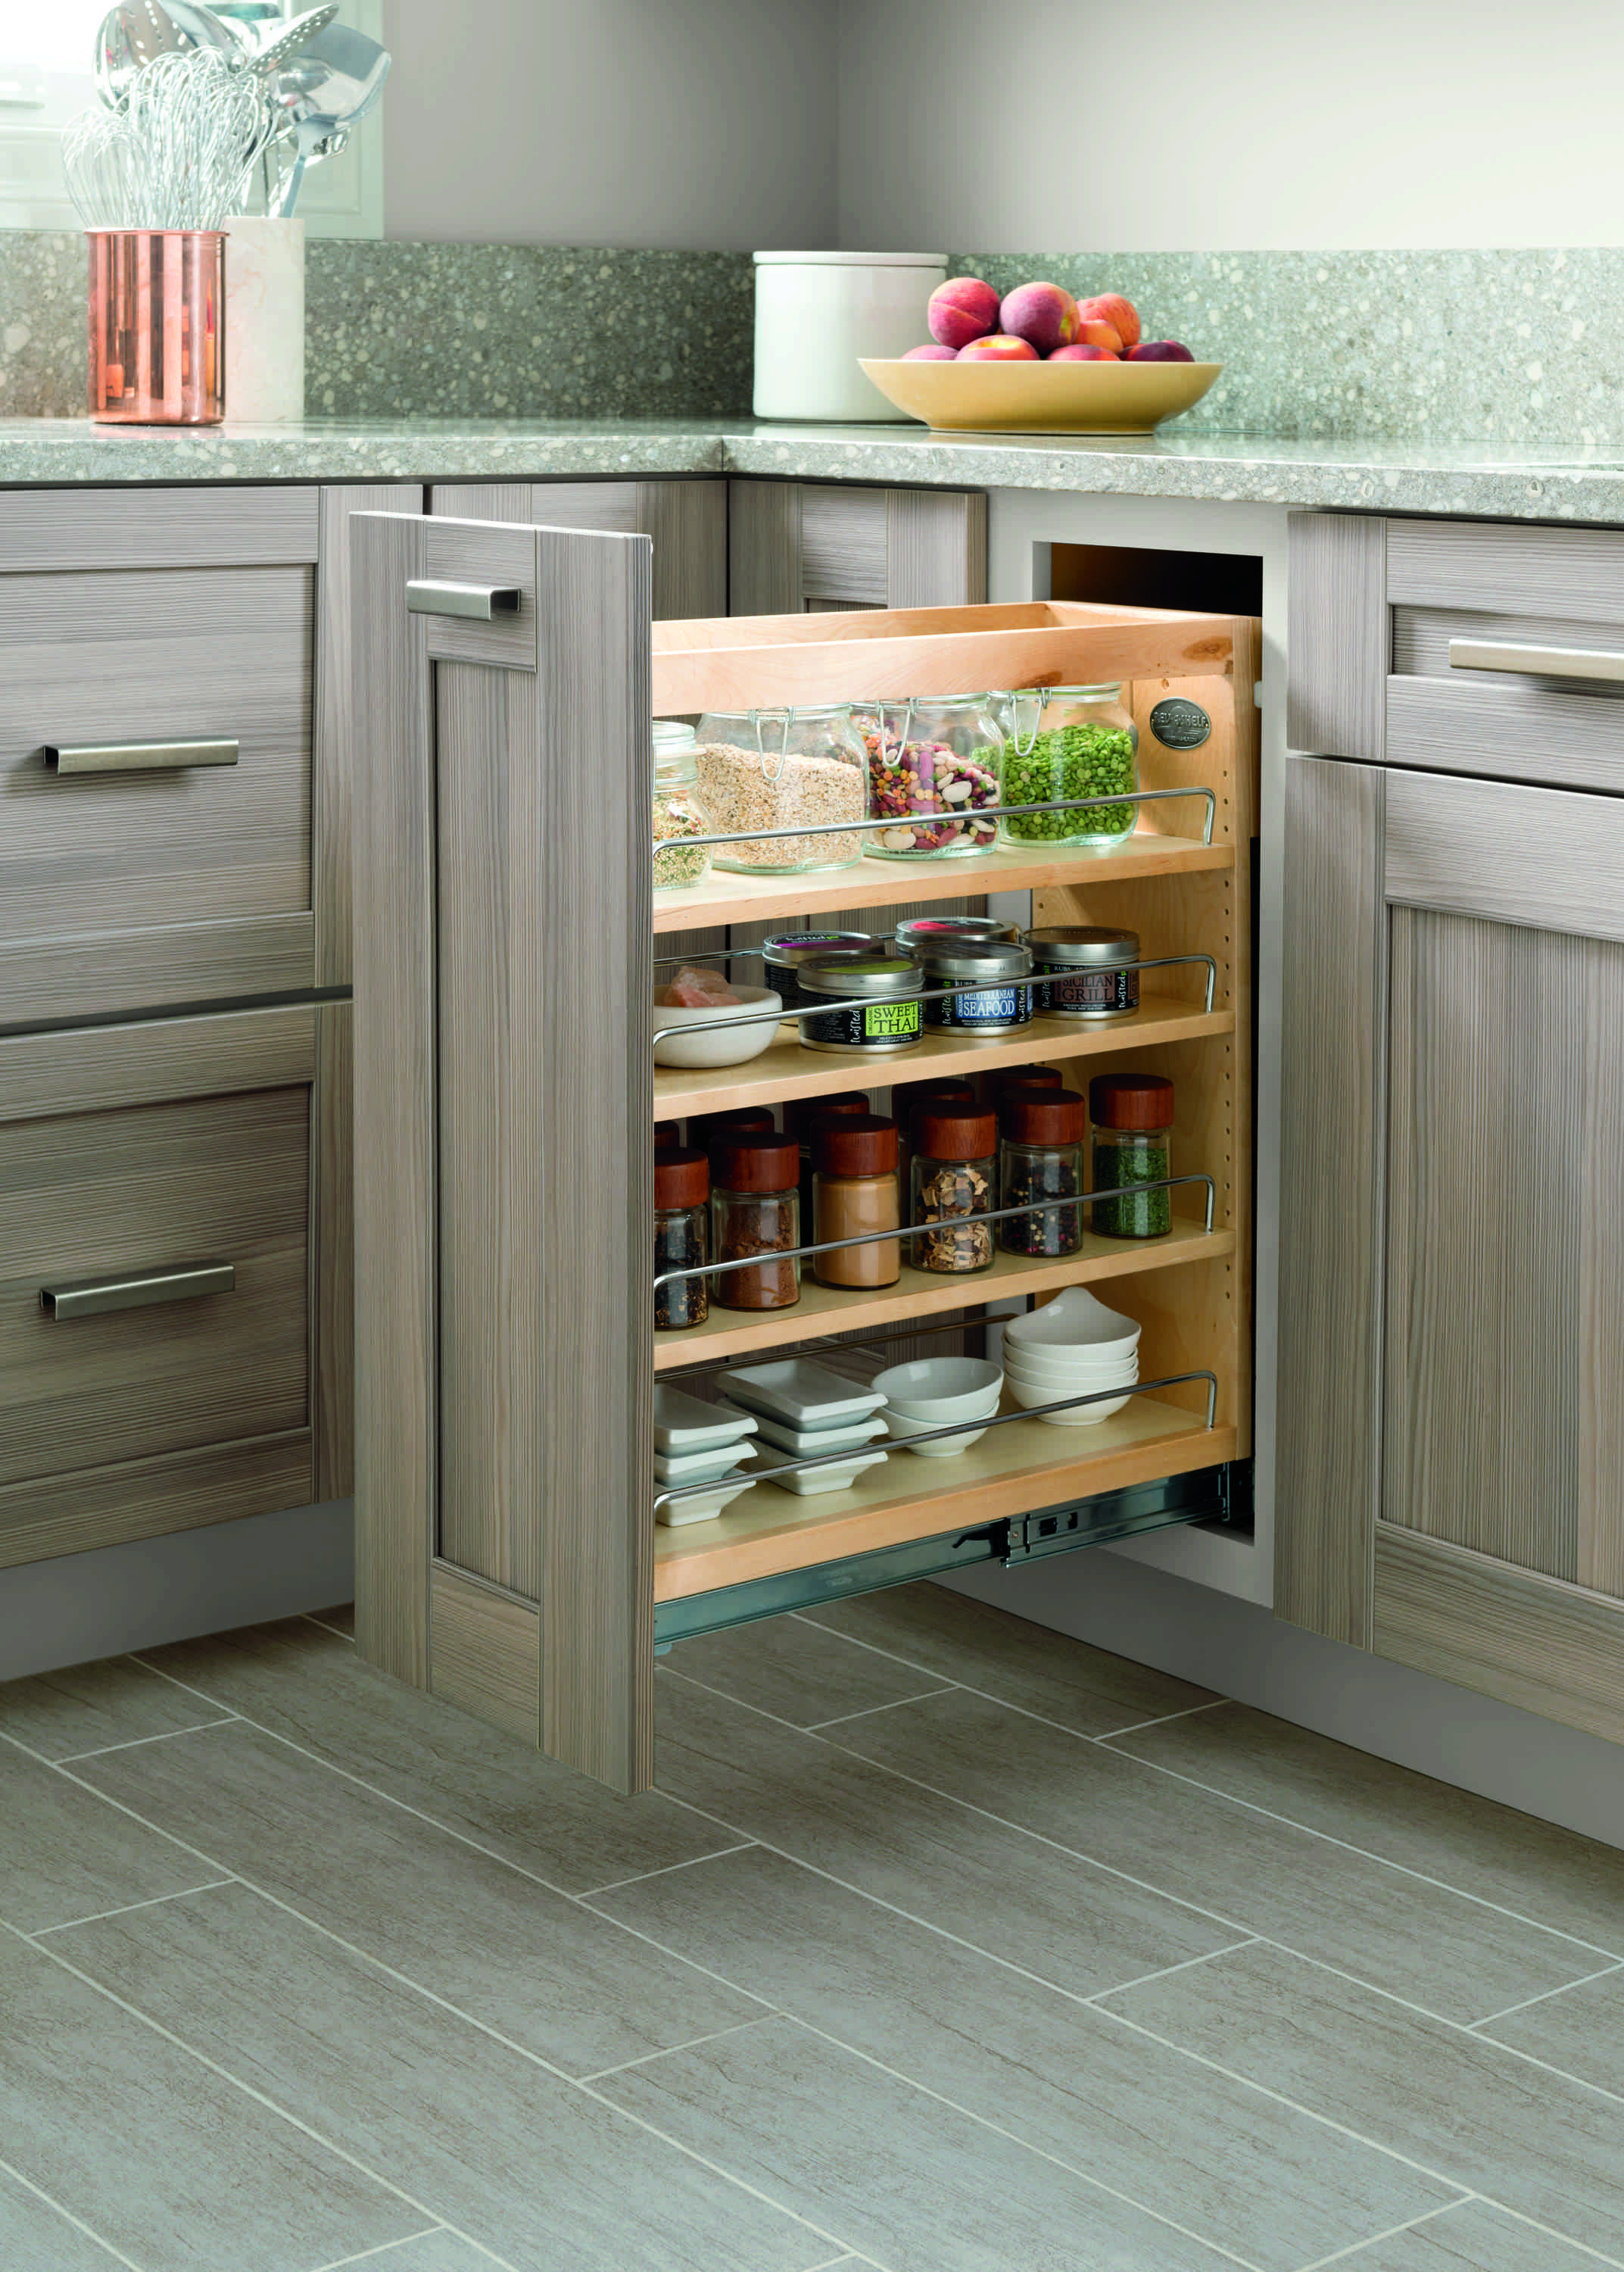 Kitchen Storage Tip Maximize Counter Space By Storing Spices And